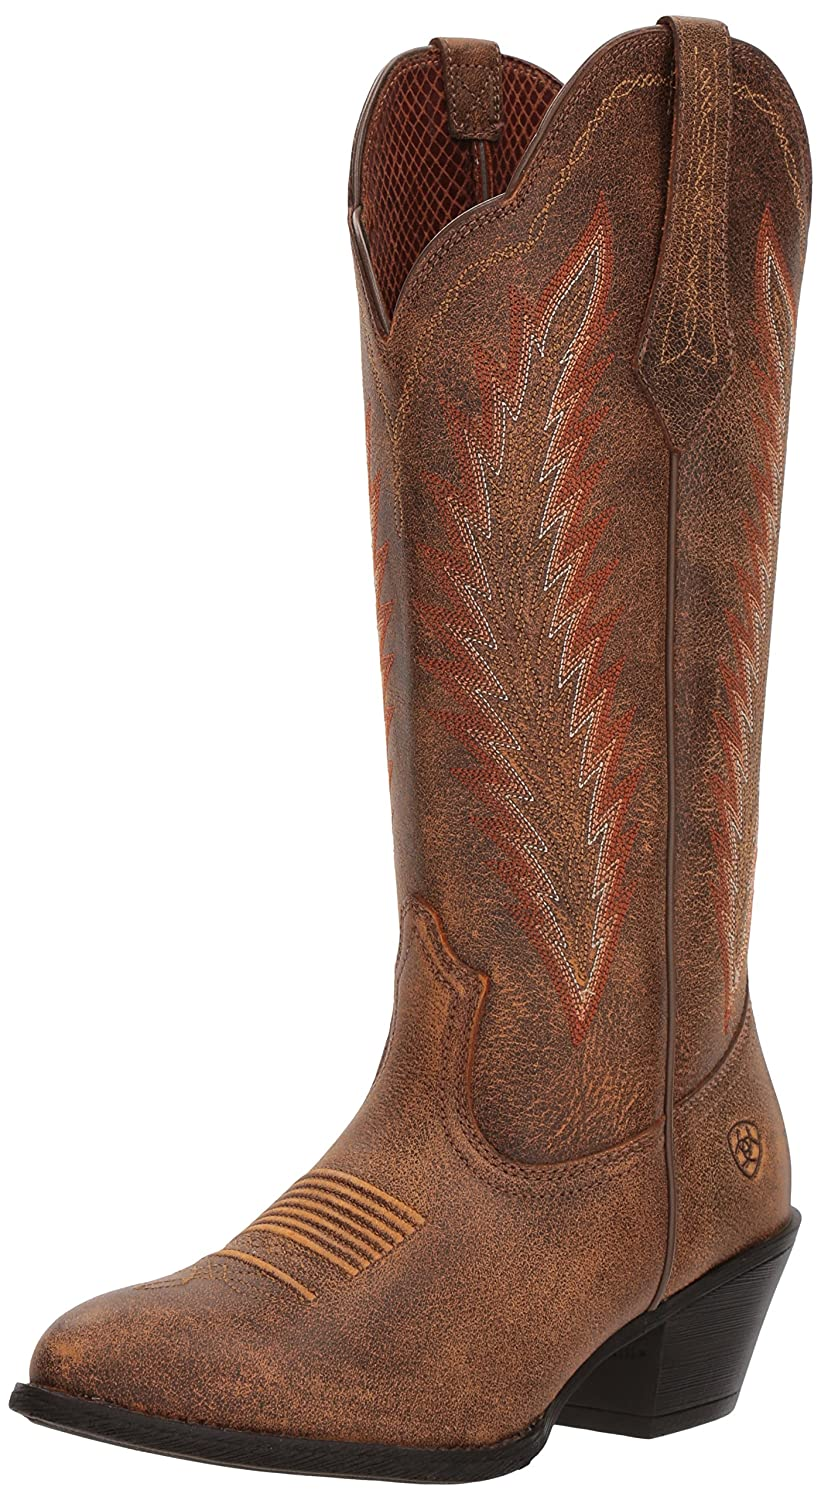 Cheap Limited Edition Ariat Vaquera Caiman Cowgirl Boot(Women's) -Black Caiman Belly/Black Full Grain Leather Outlet Shop For Sale Low Cost From China Discount Choice cdDFUbV